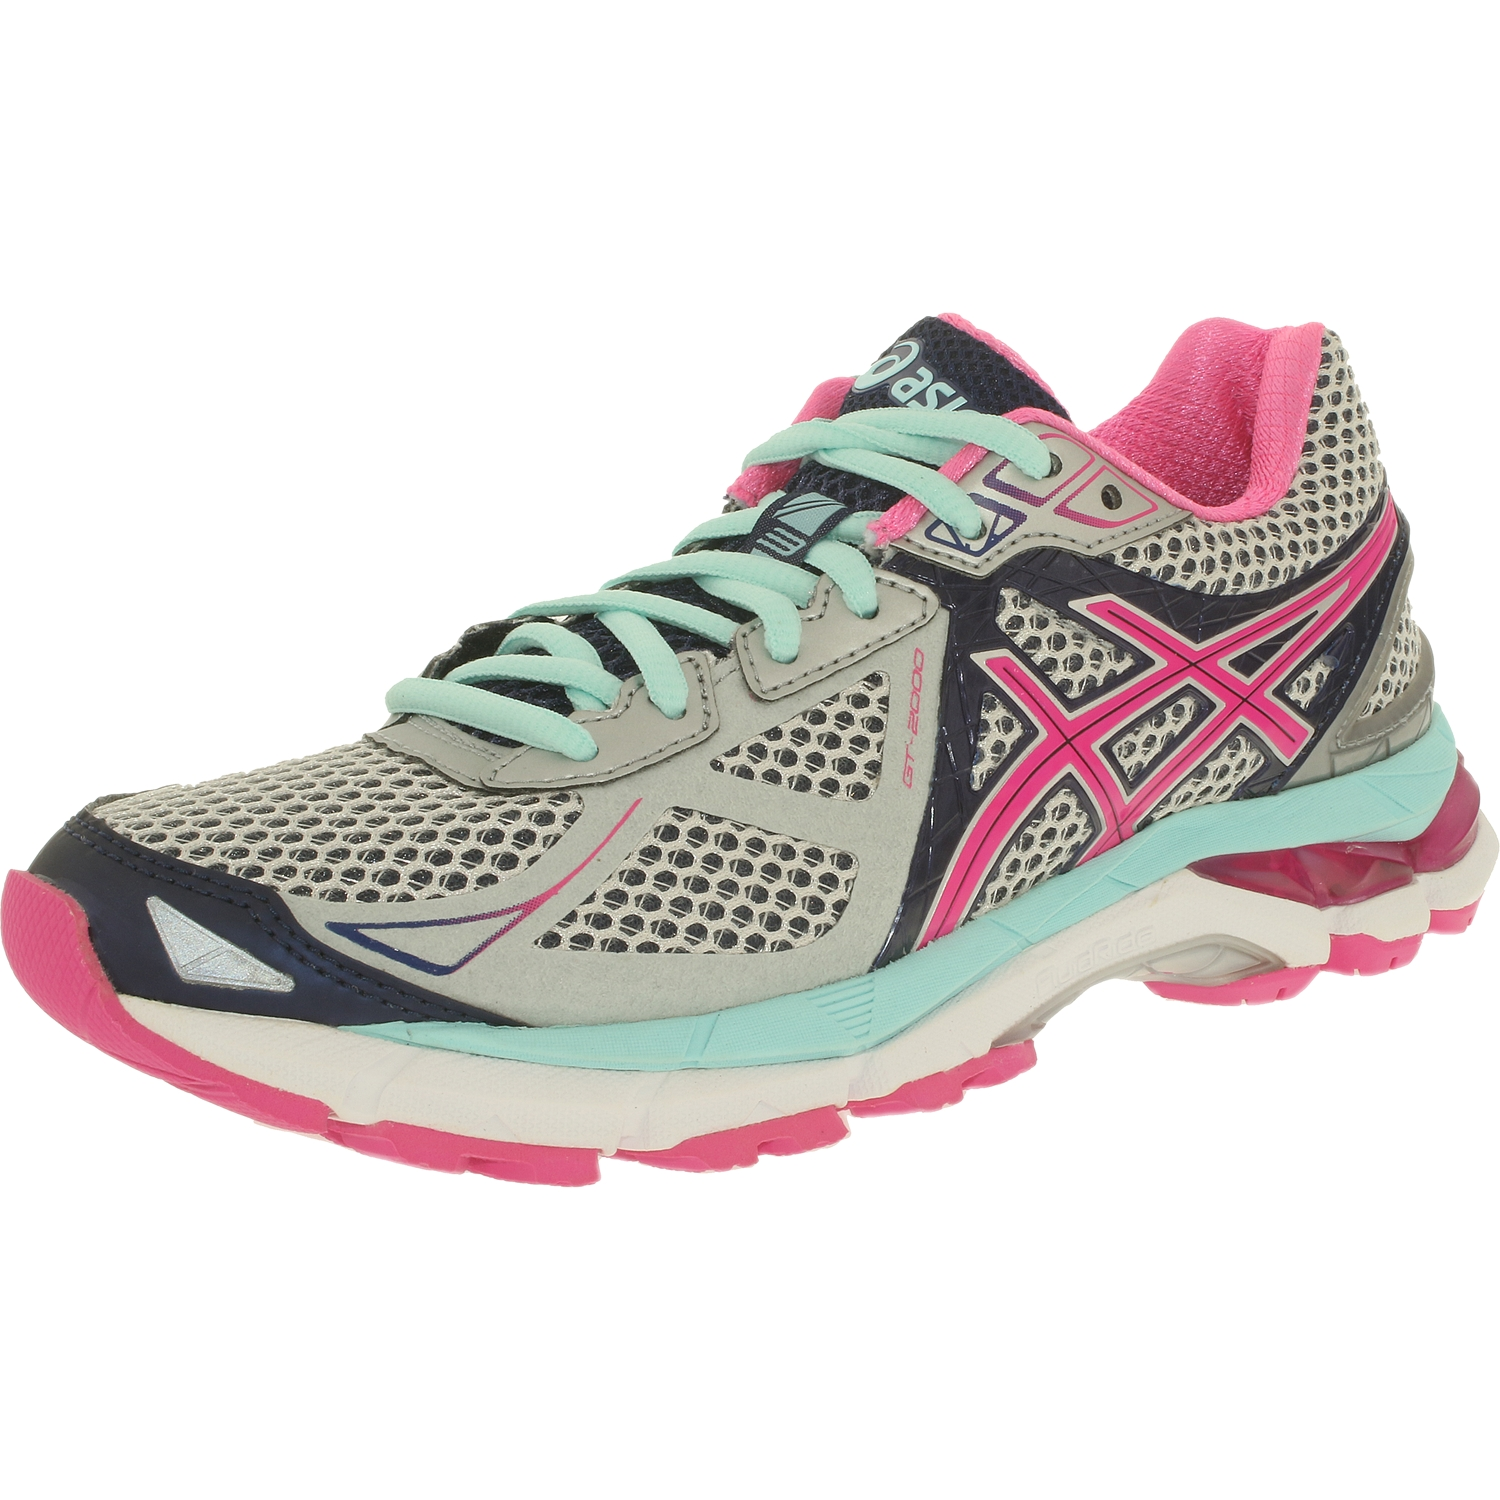 ASICS Womens GT-2000 3 Running Athletic Sneaker Shoes